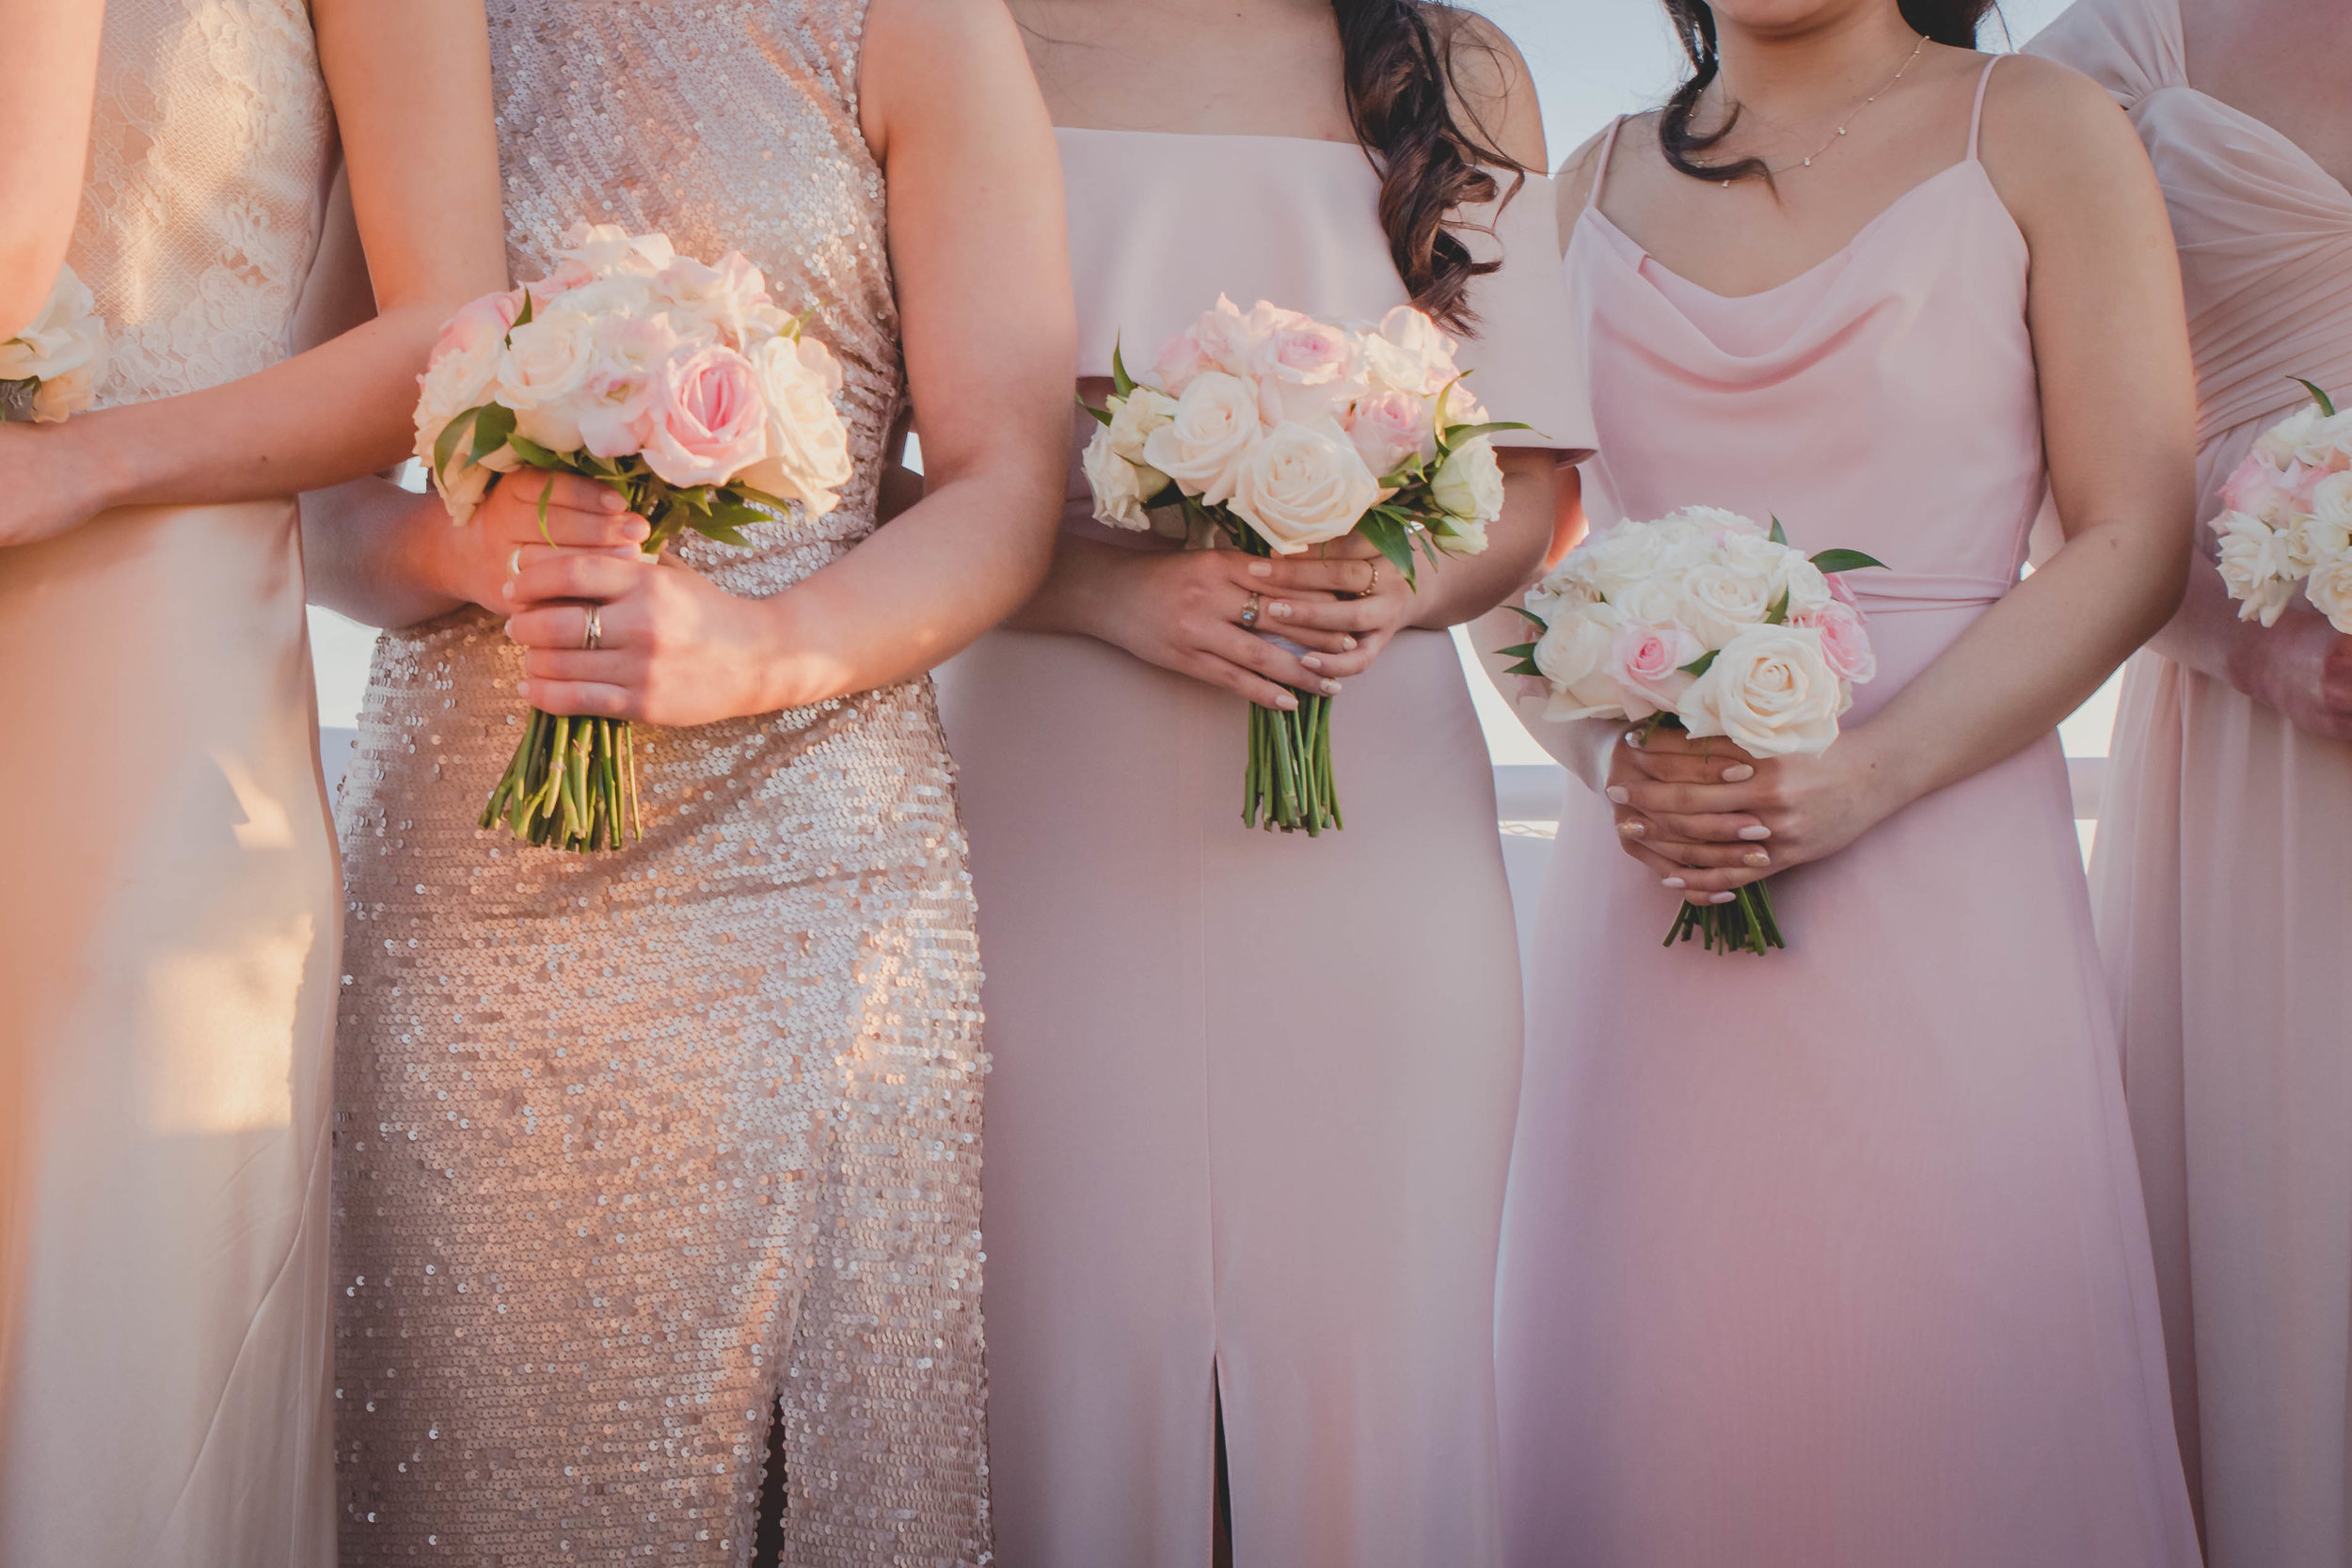 A group of bridesmaids wearing pink and holding pink bouquets.